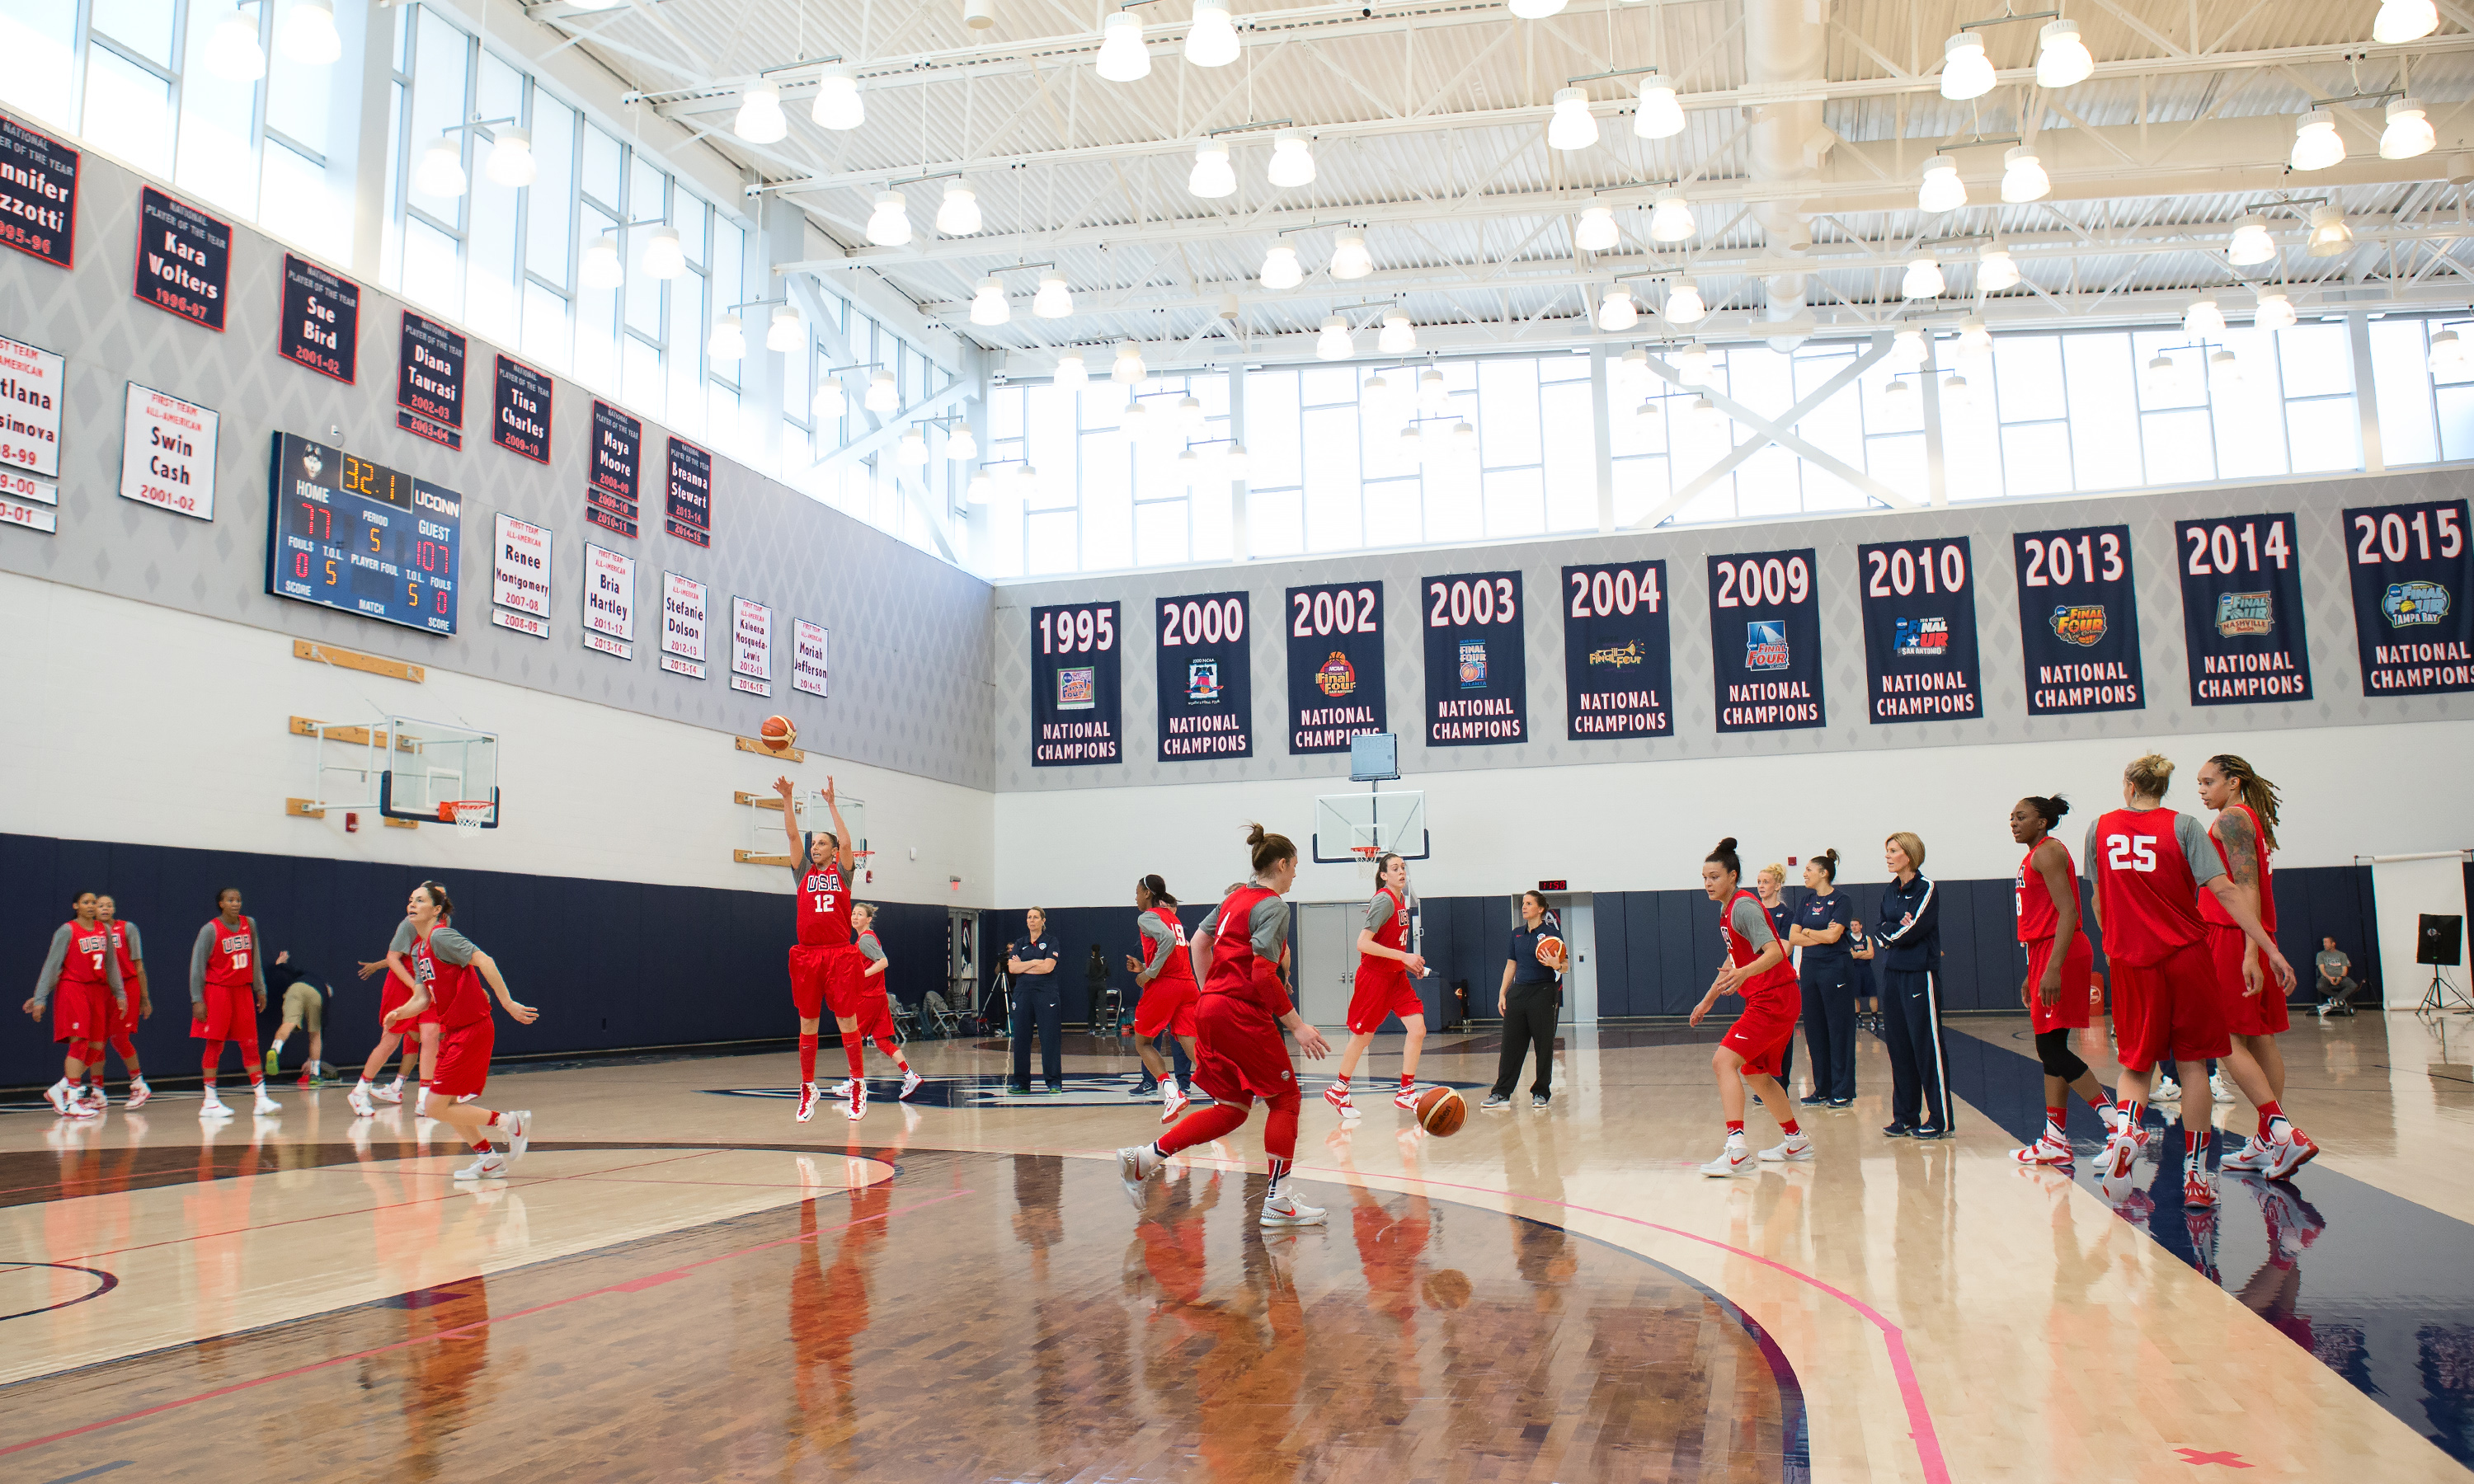 Finalists for the 2016 USA Women's Basketball team try out in the Werth Family UConn Basketball Champions Center during the Olympic Training camp Feb. 21-23. (Stephen Slade '89 (SFA) for UConn)